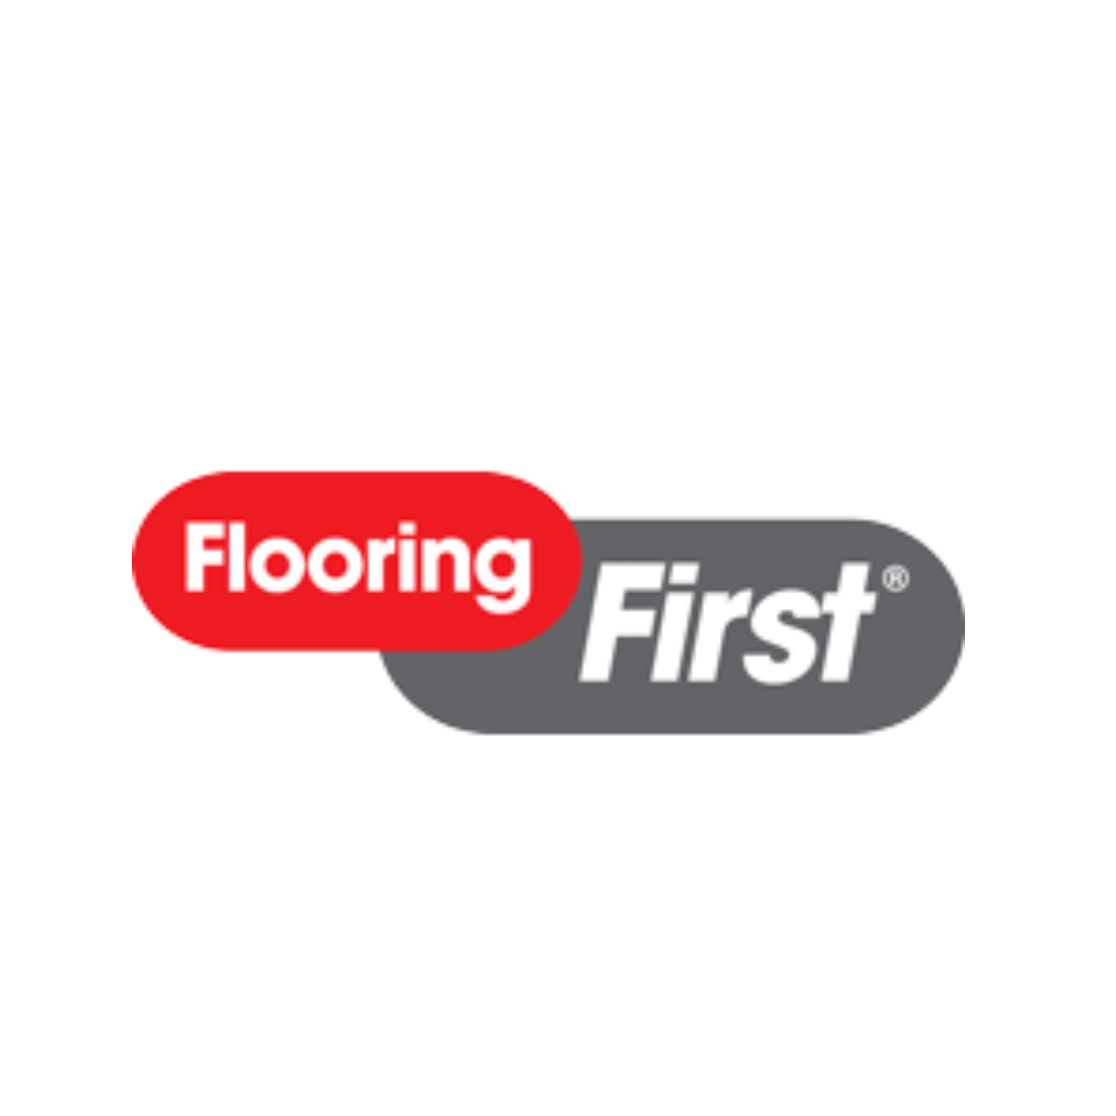 flooring first.png